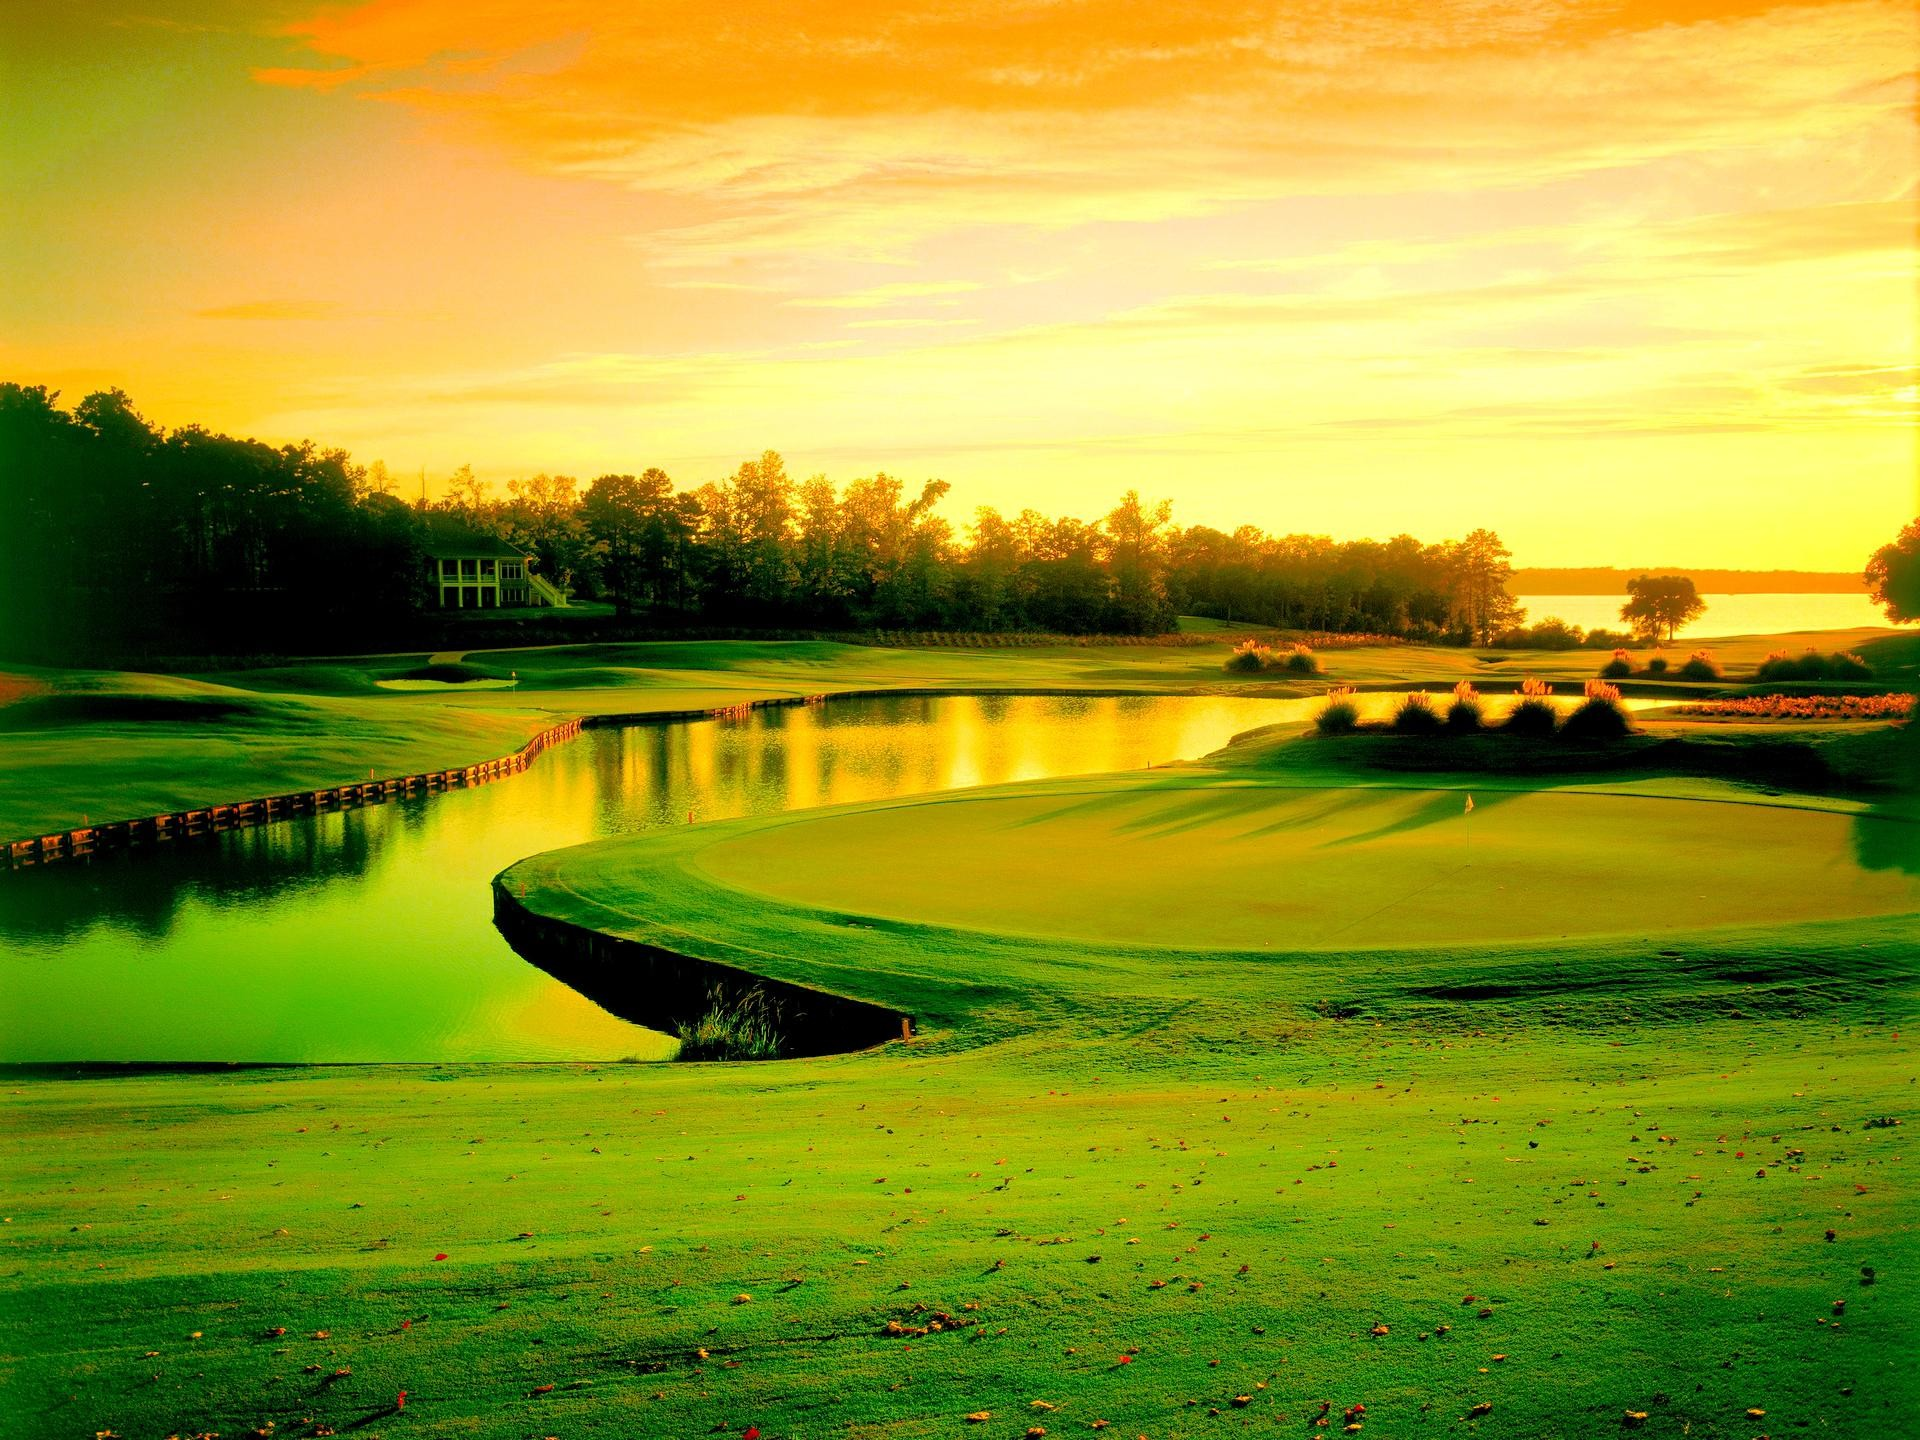 1920x1440 Golf course - (#156278) - High Quality and Resolution Wallpapers .